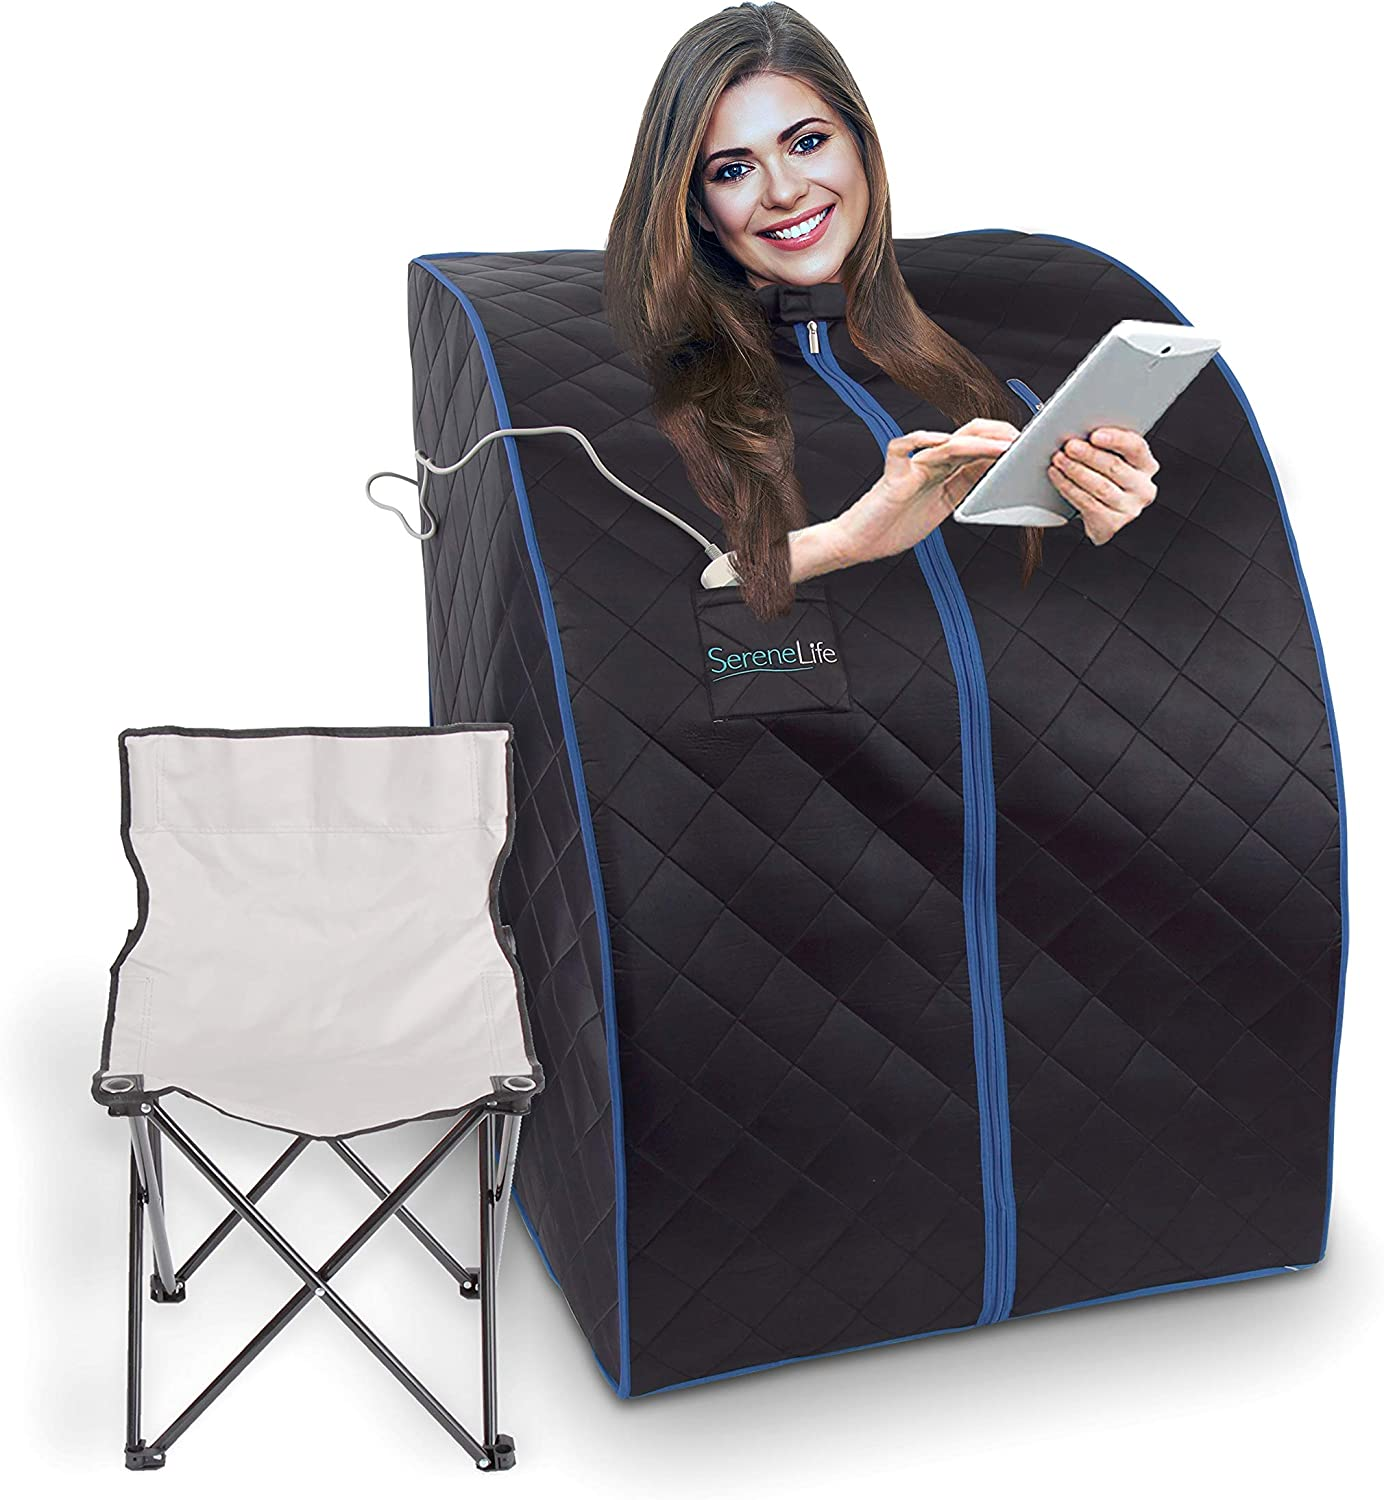 SereneLife Oversize Portable Infrared Home Spa | One Person Sauna | with Heating Foot Pad & Portable Chair, SLISAU20BK, Black